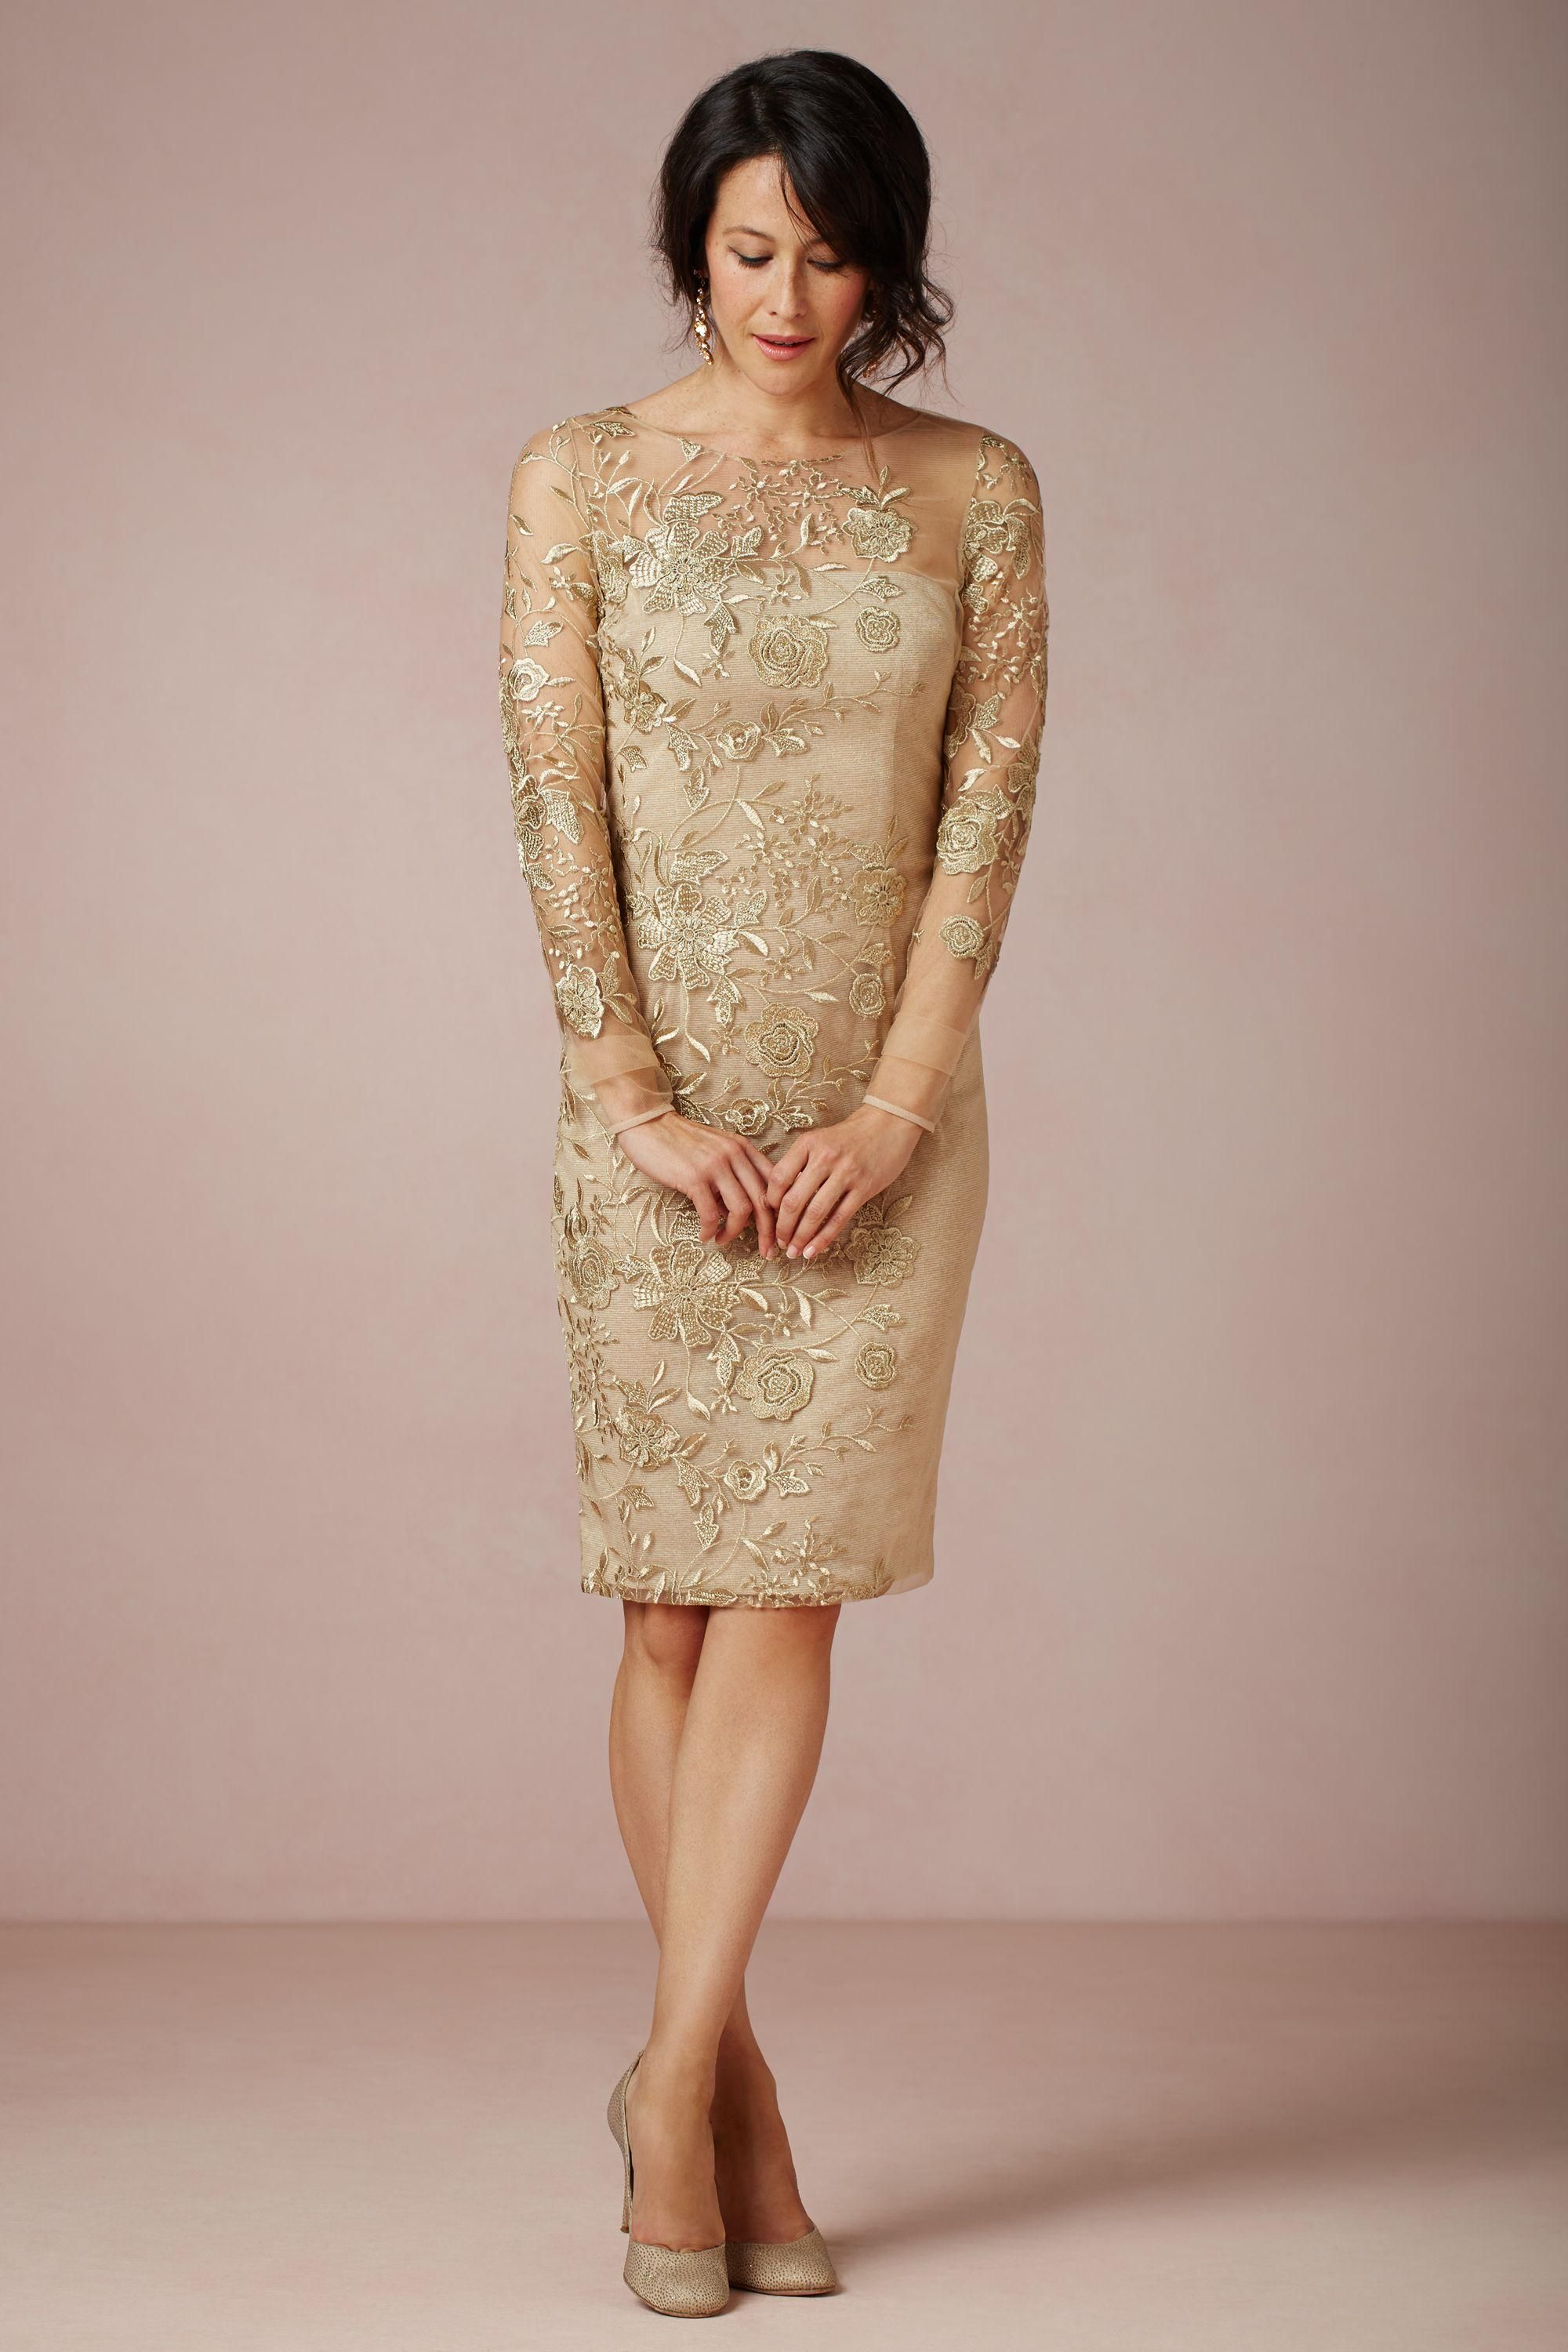 Marvelous Gold Mother Of The Bride Dress Part 8 - Mother Of The ...